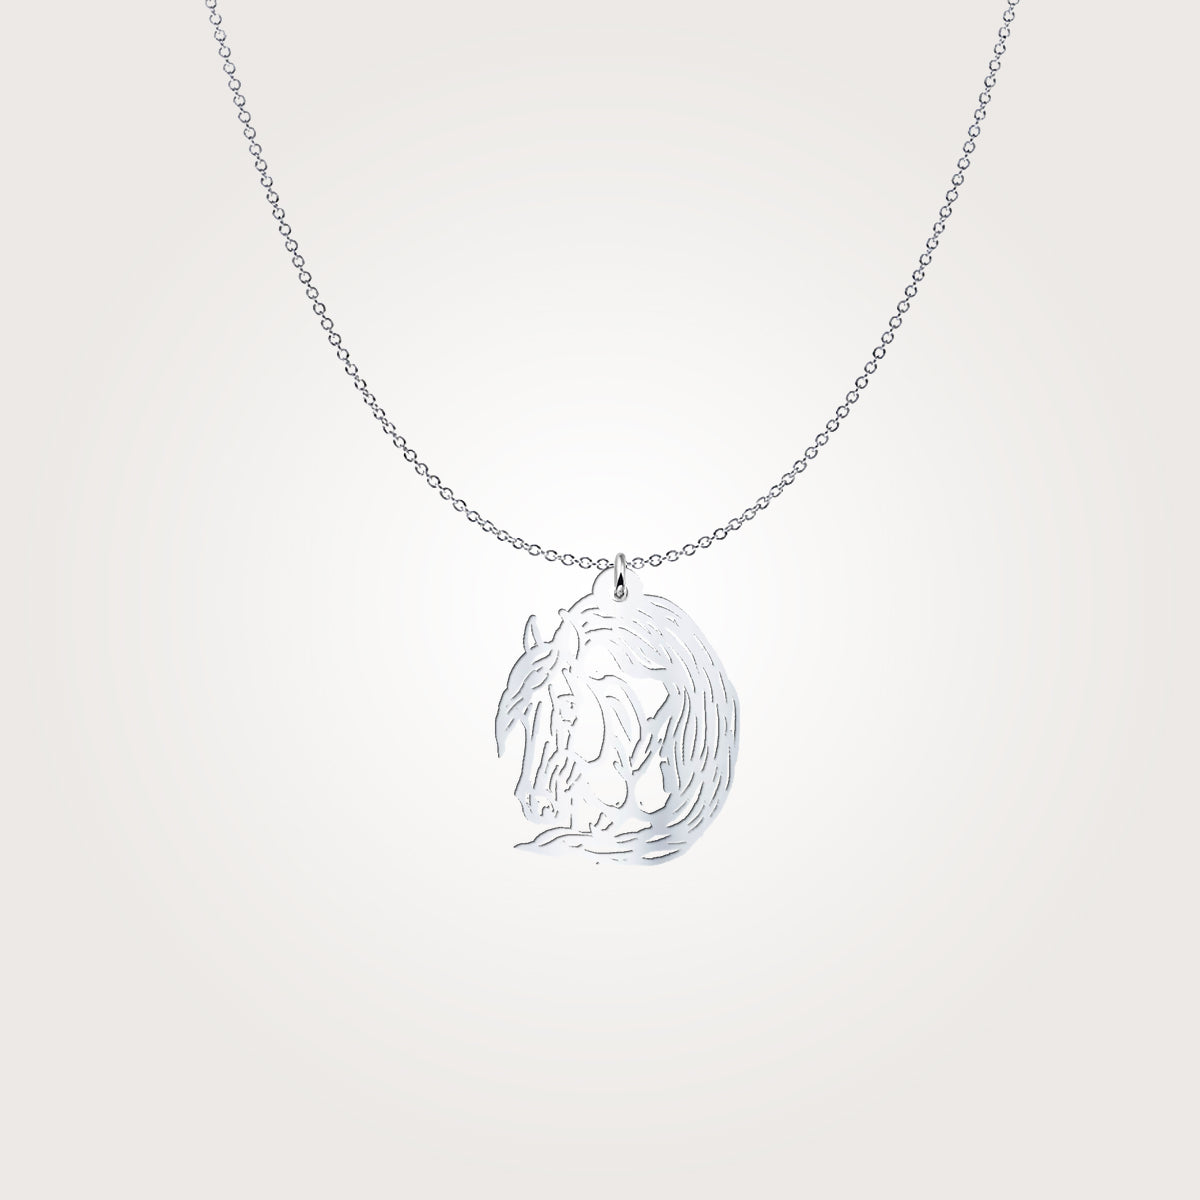 Simply Beautiful Quarter Horse Silver Necklace